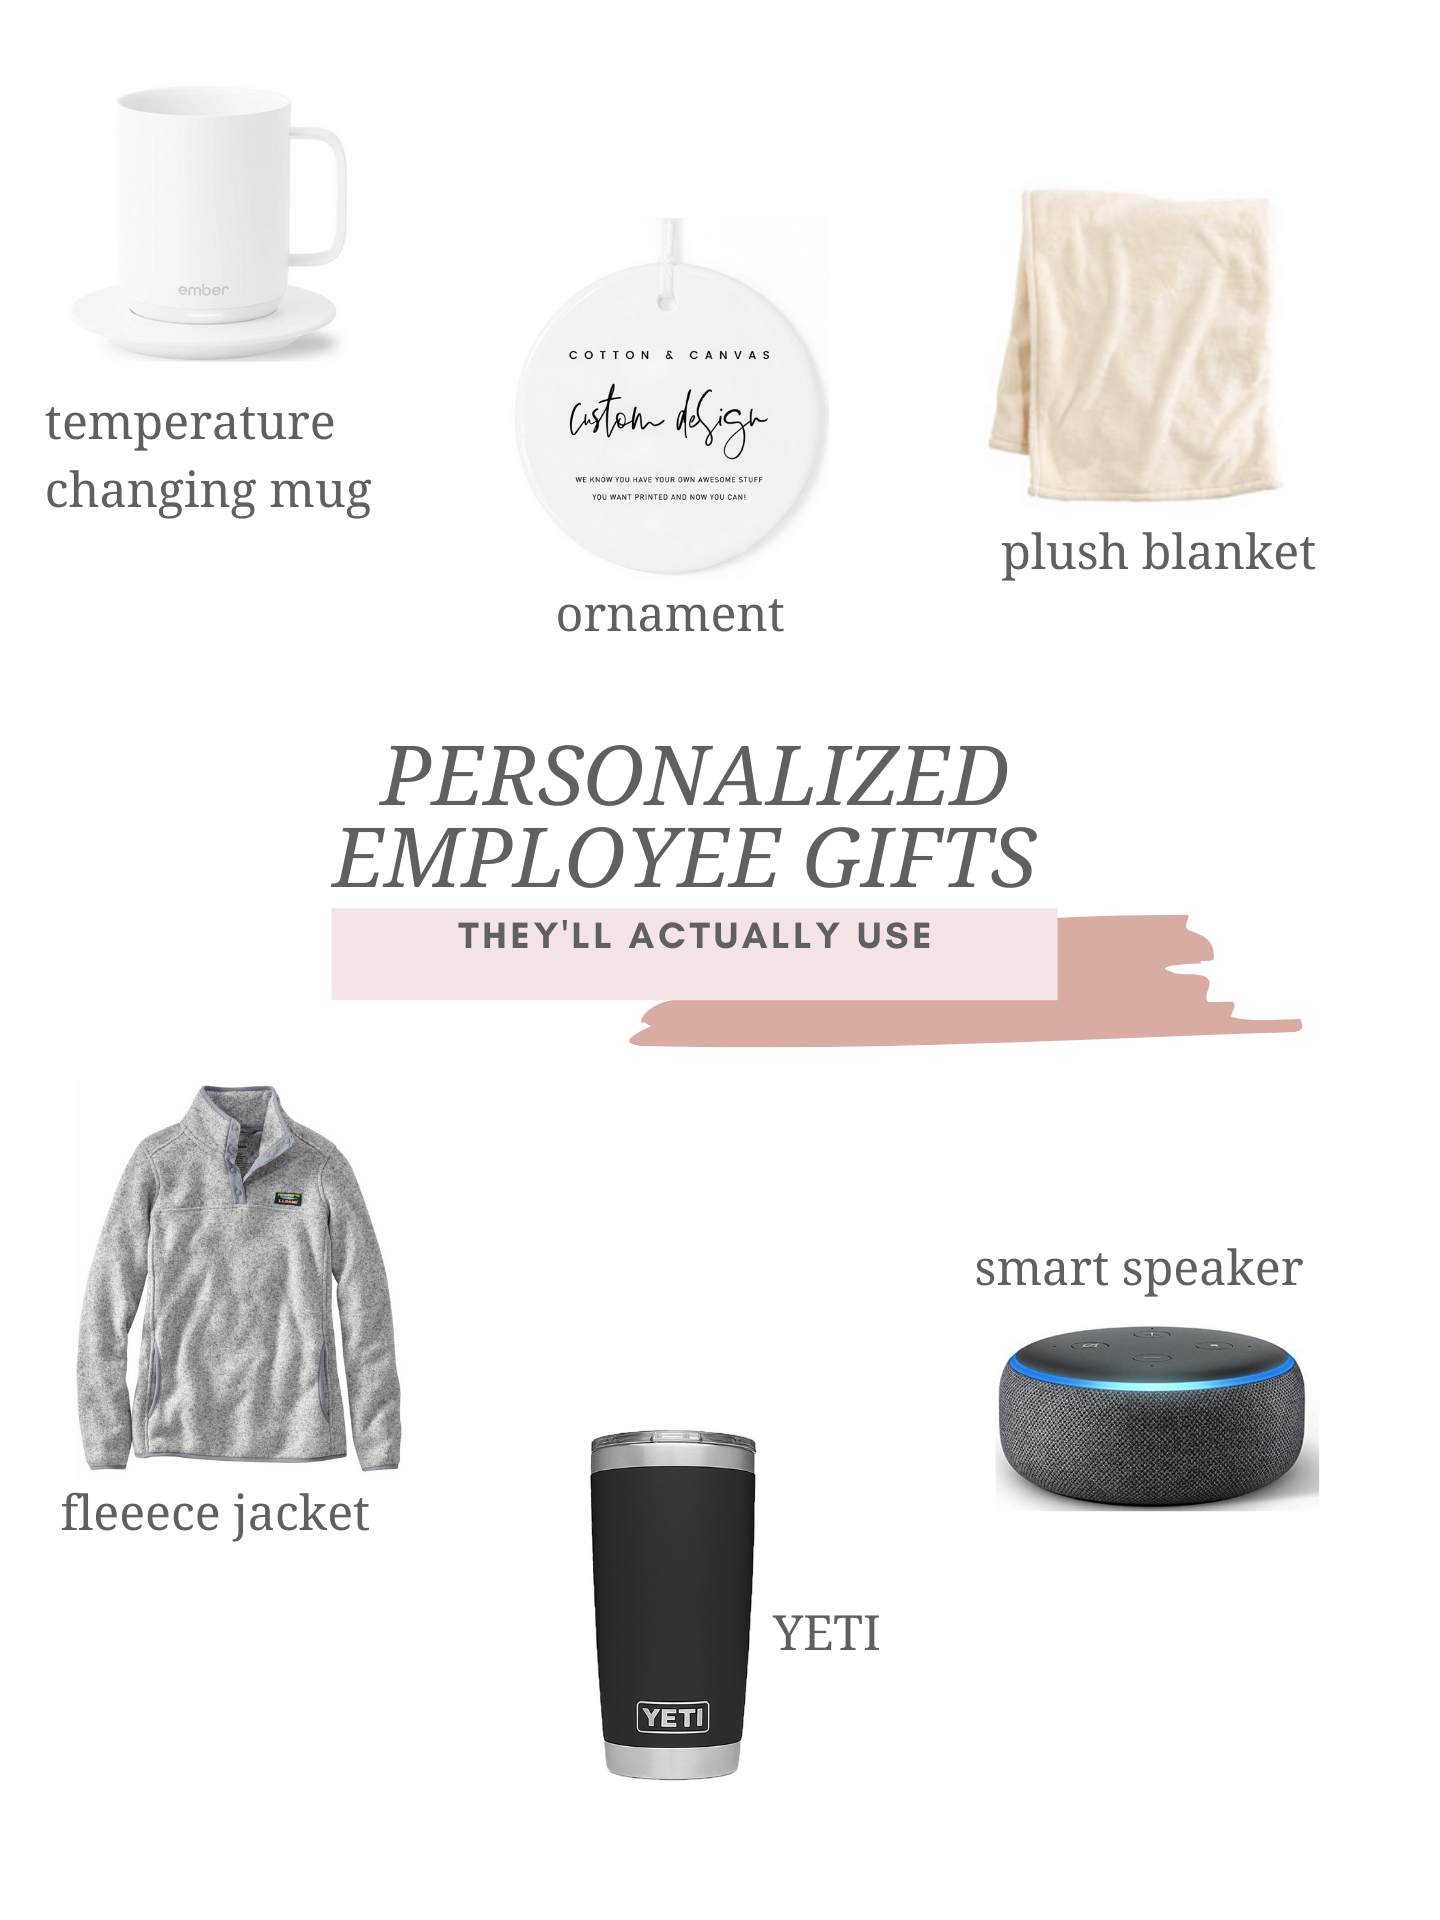 6 personalized employee gifts they'll actually use